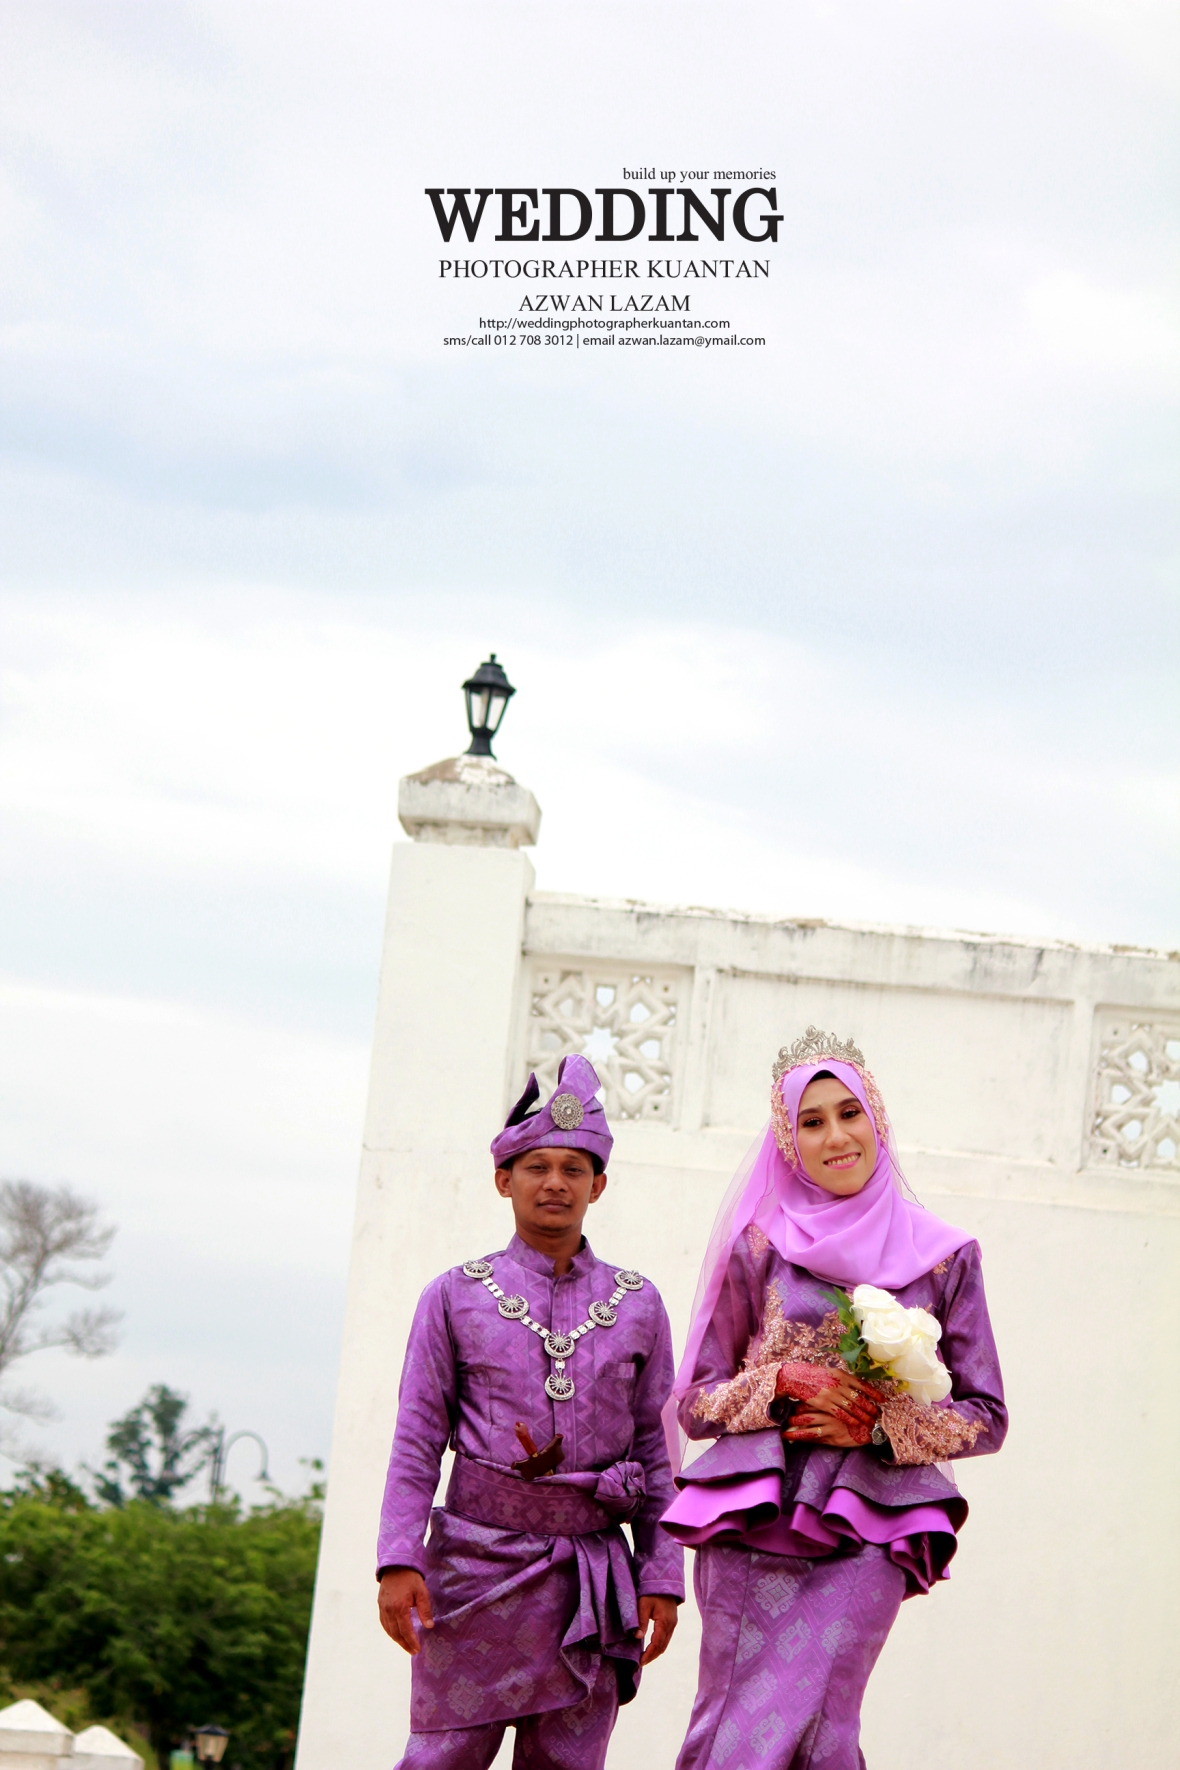 wedding-photographer-kuantan-promo-4